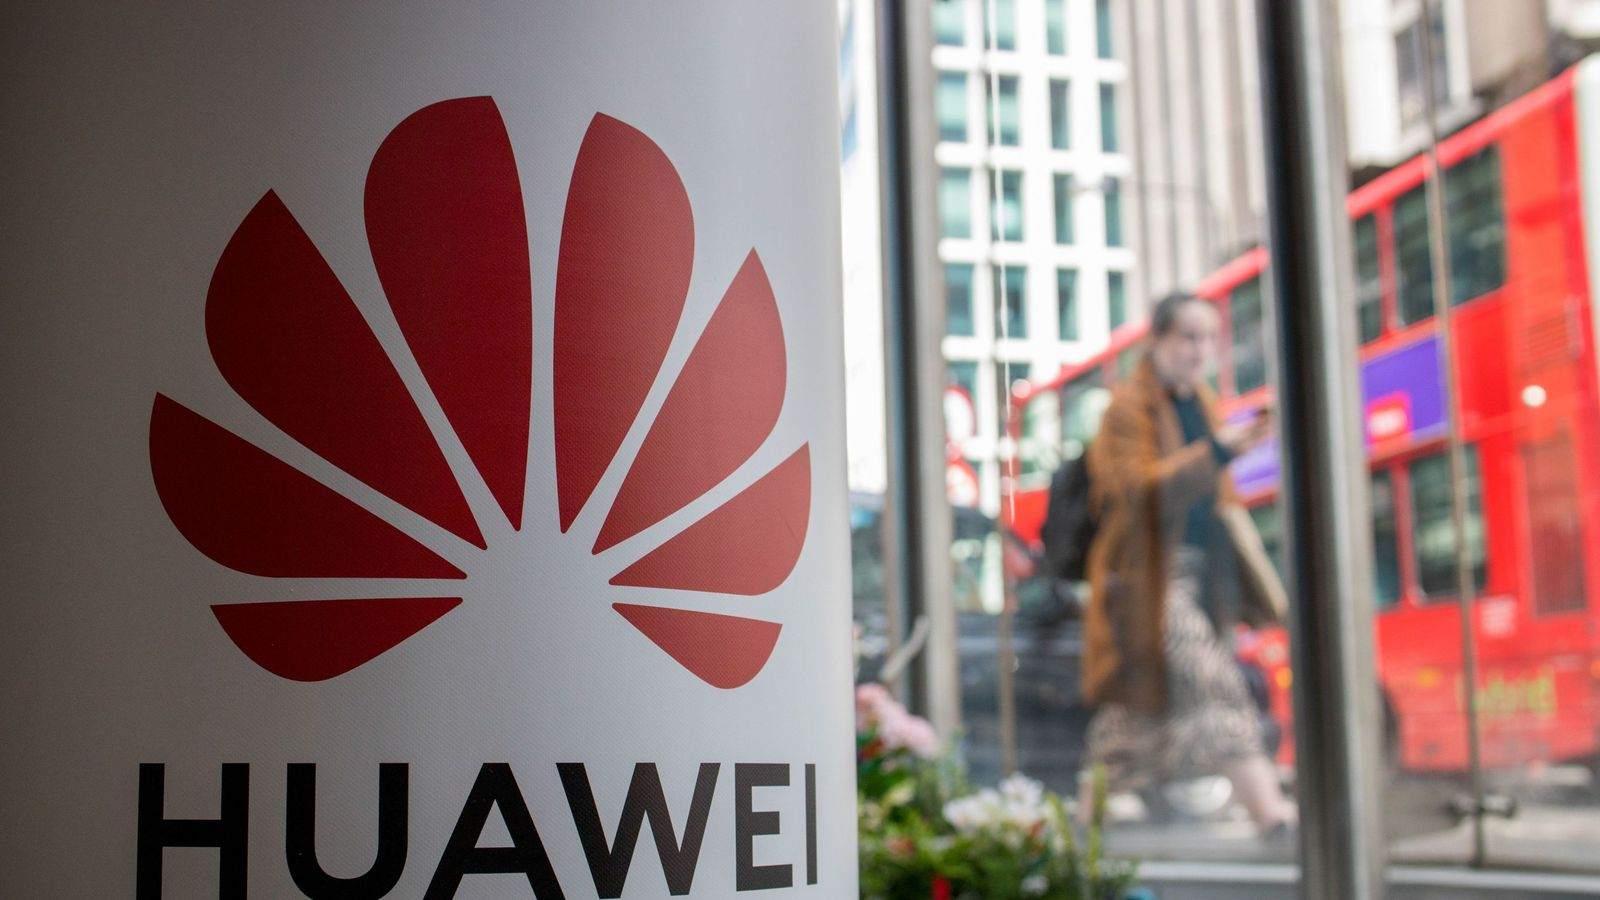 Huawei confident it'll be part of UK's 5G network despite US pressure